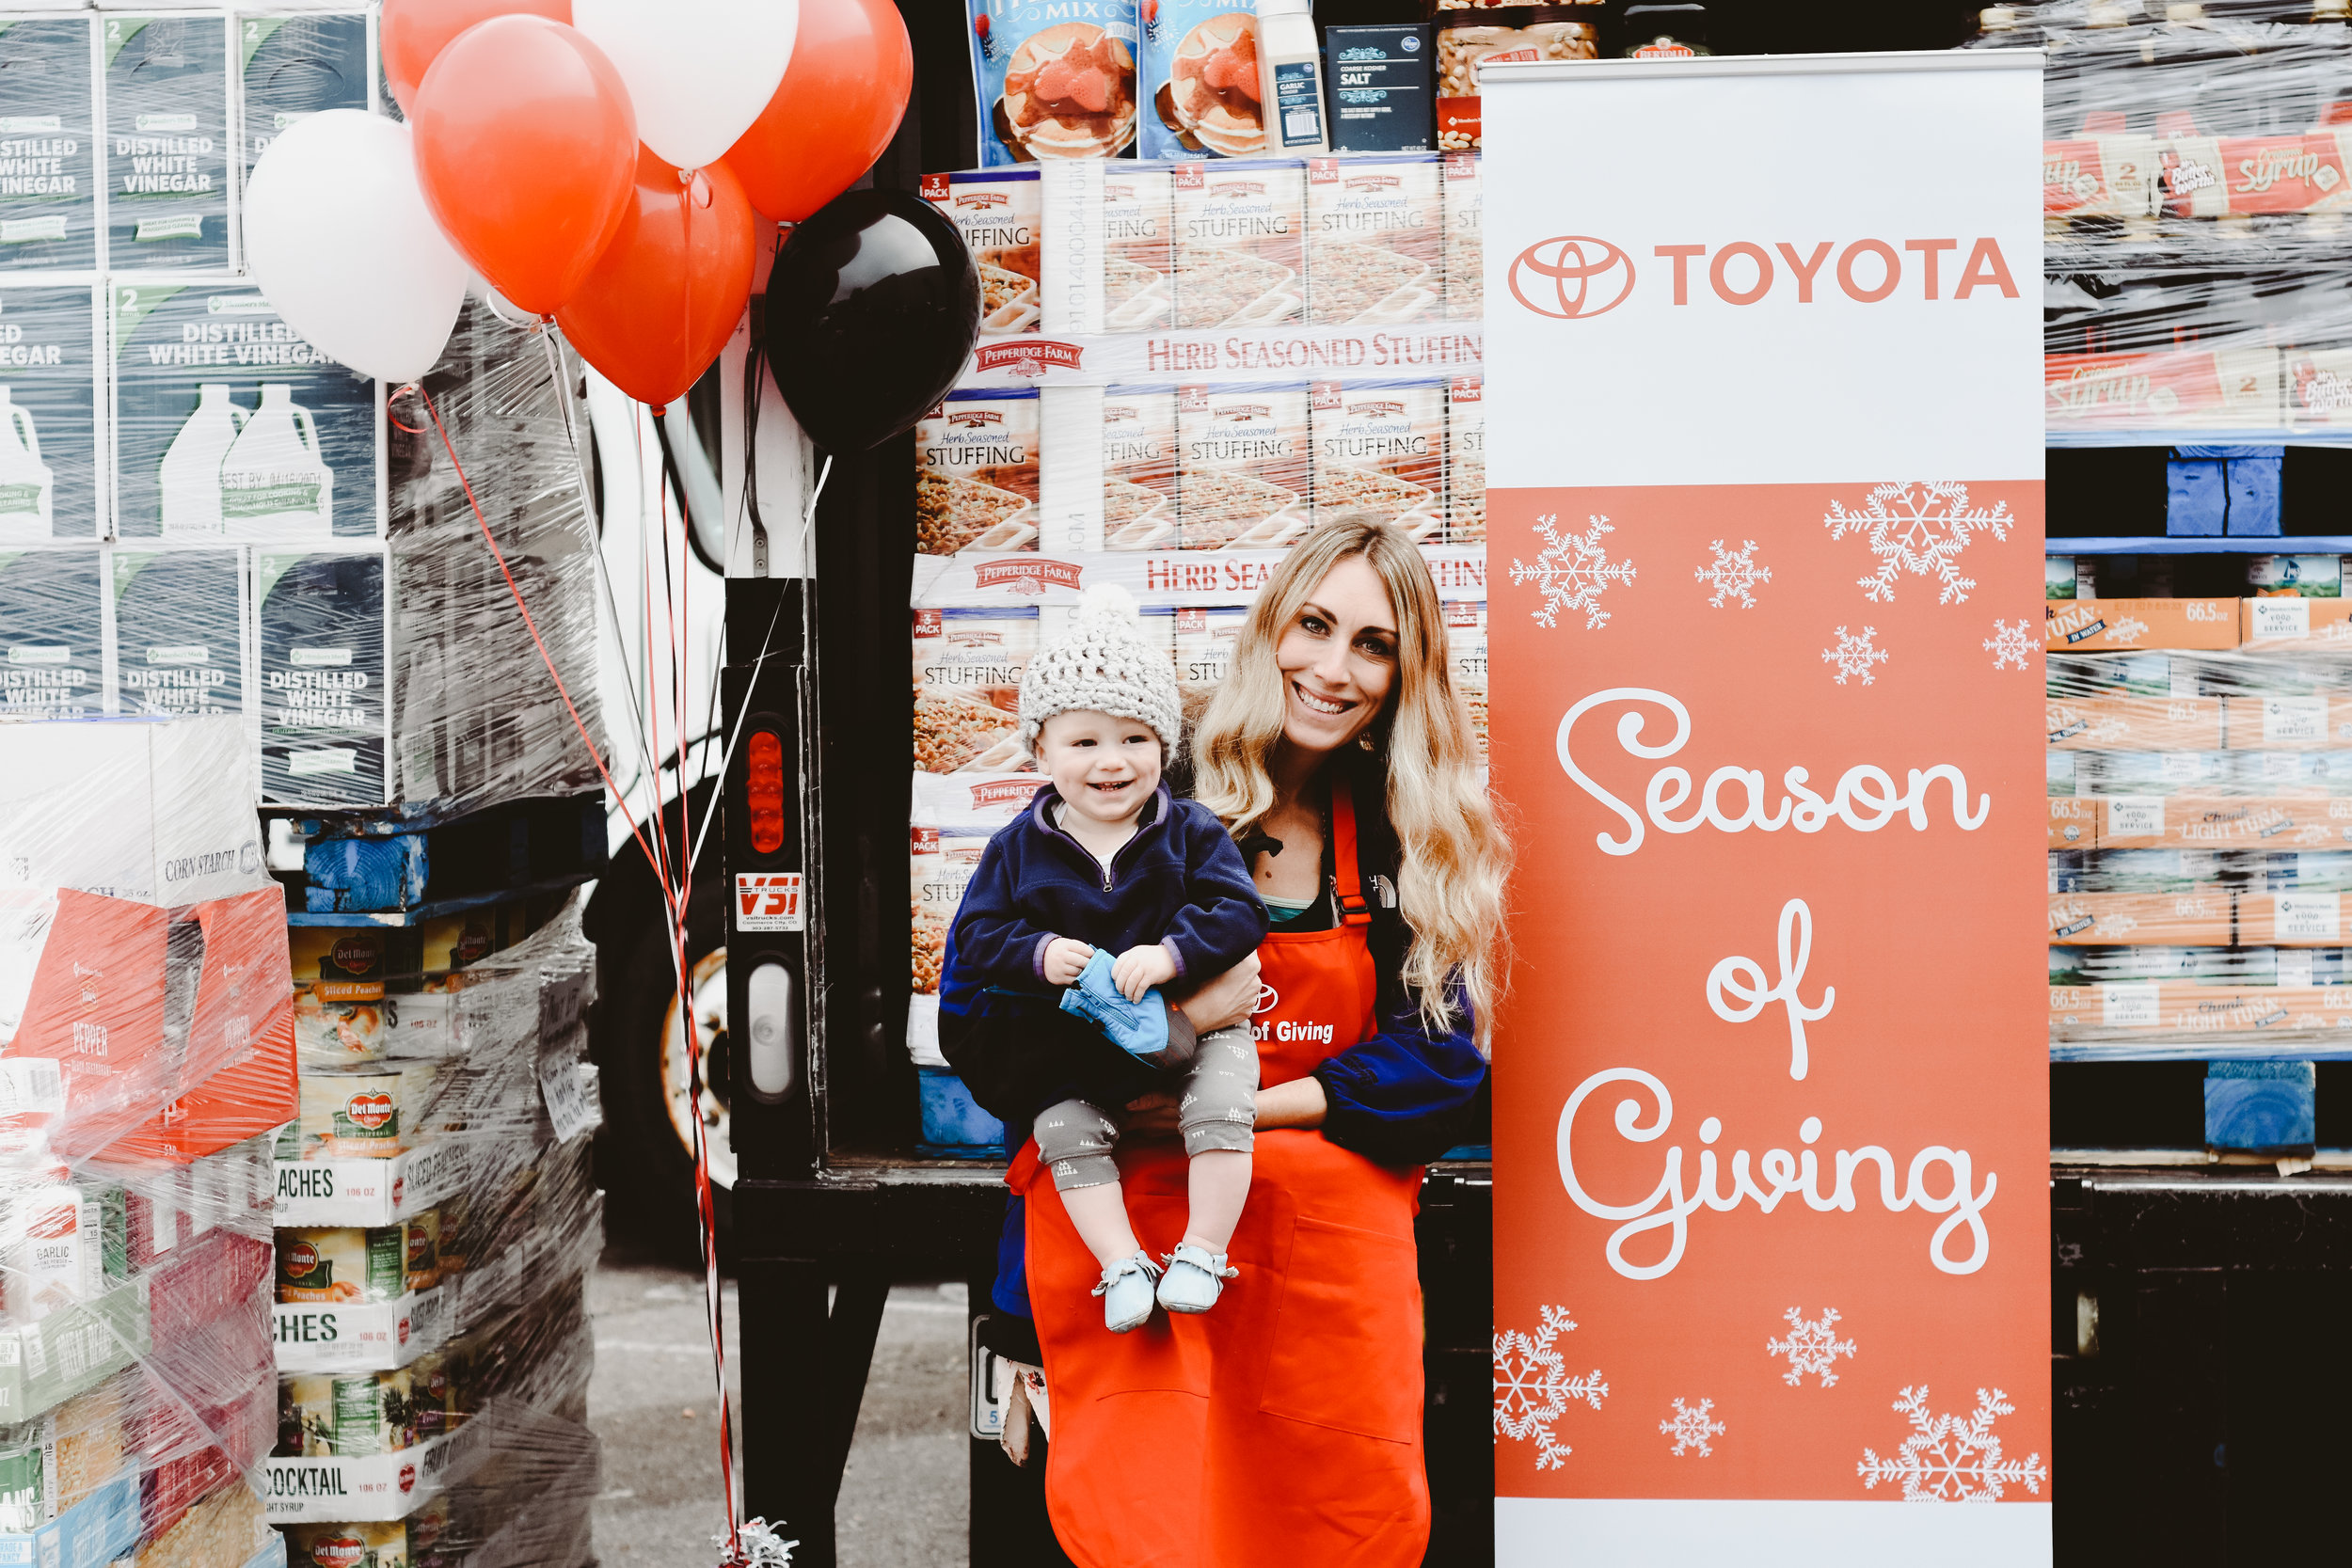 Season of Giving at the Denver Rescue Mission with Toyota